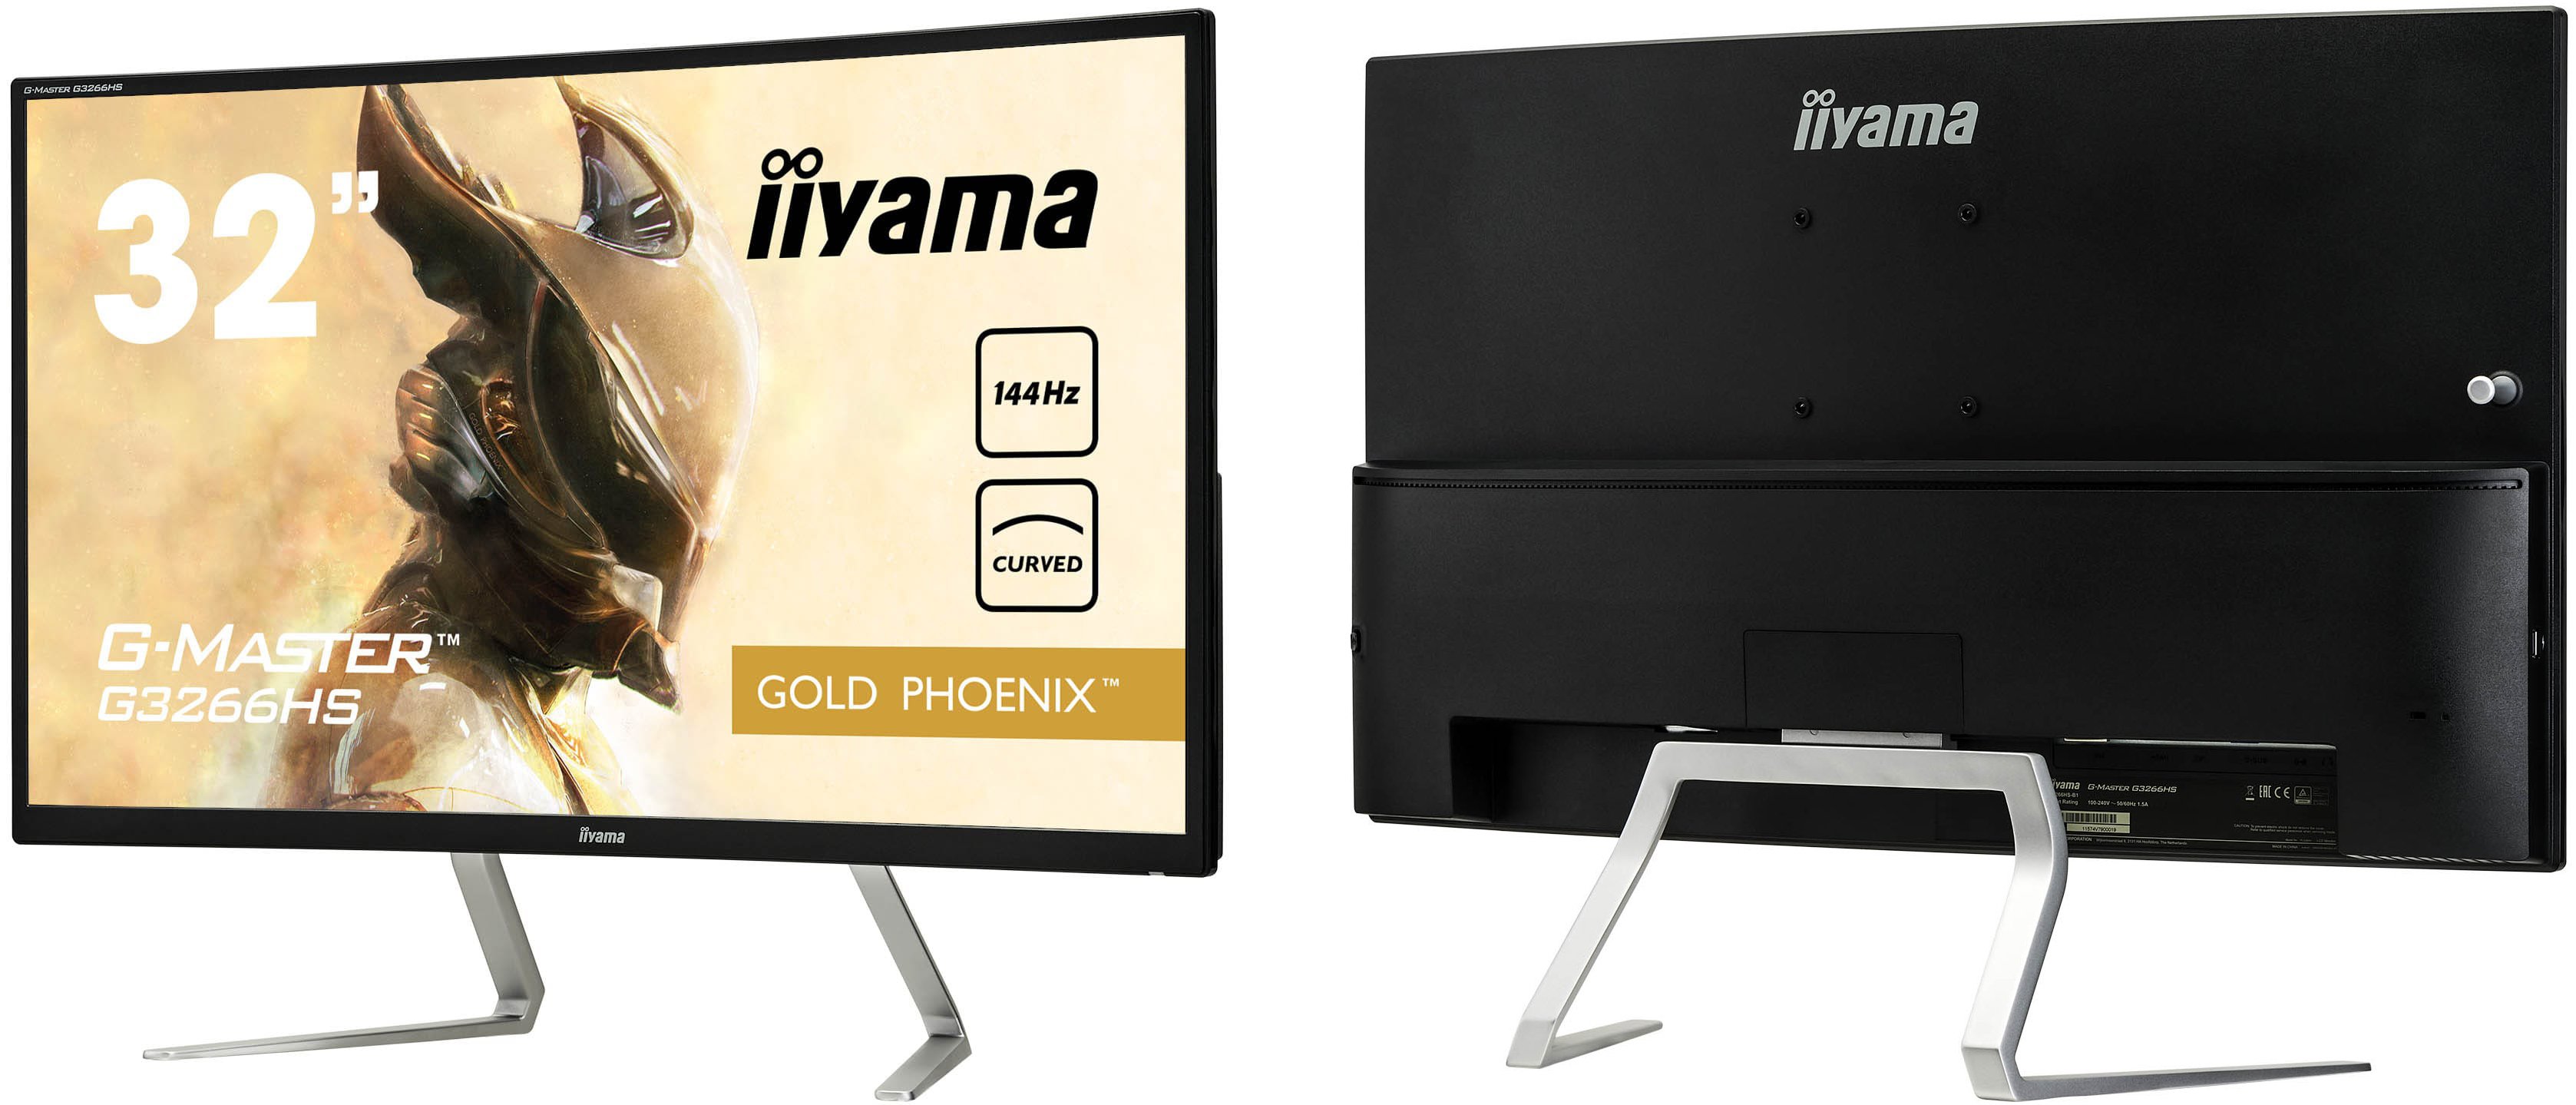 Iiyama Unveils Its First Curved Gaming Display: 31 5-inch